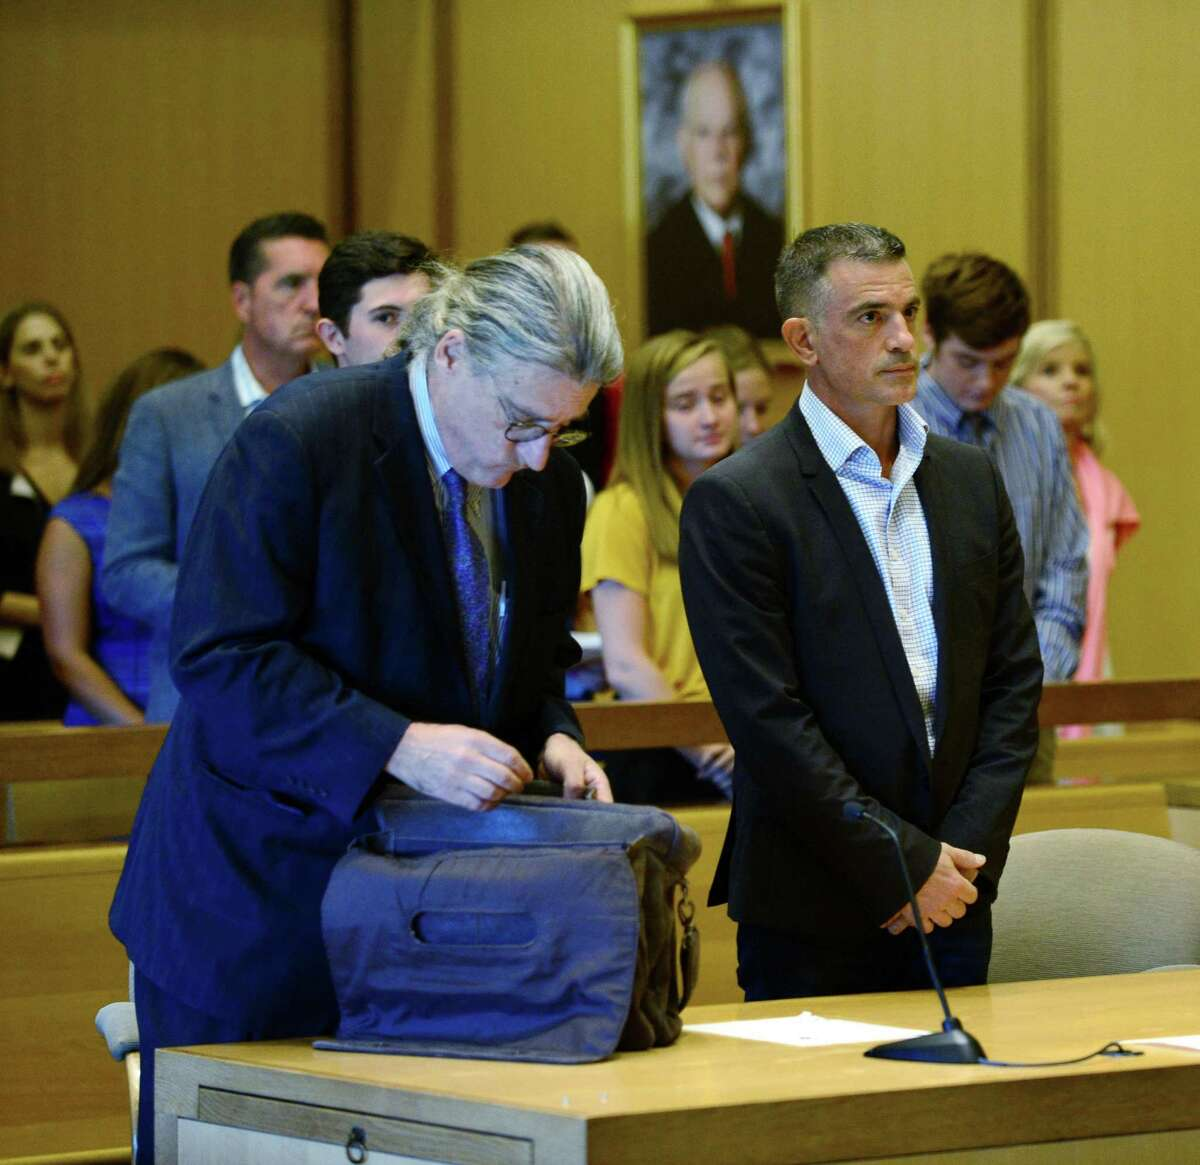 Fotis Dulos, charged with tampering with evidence and hindering prosecution in connection with his wife's disappearance, appears in Stamford Superior Court with his attorney Norm Pattis, left, Friday, August 9, 2018, in Stamford, Conn.